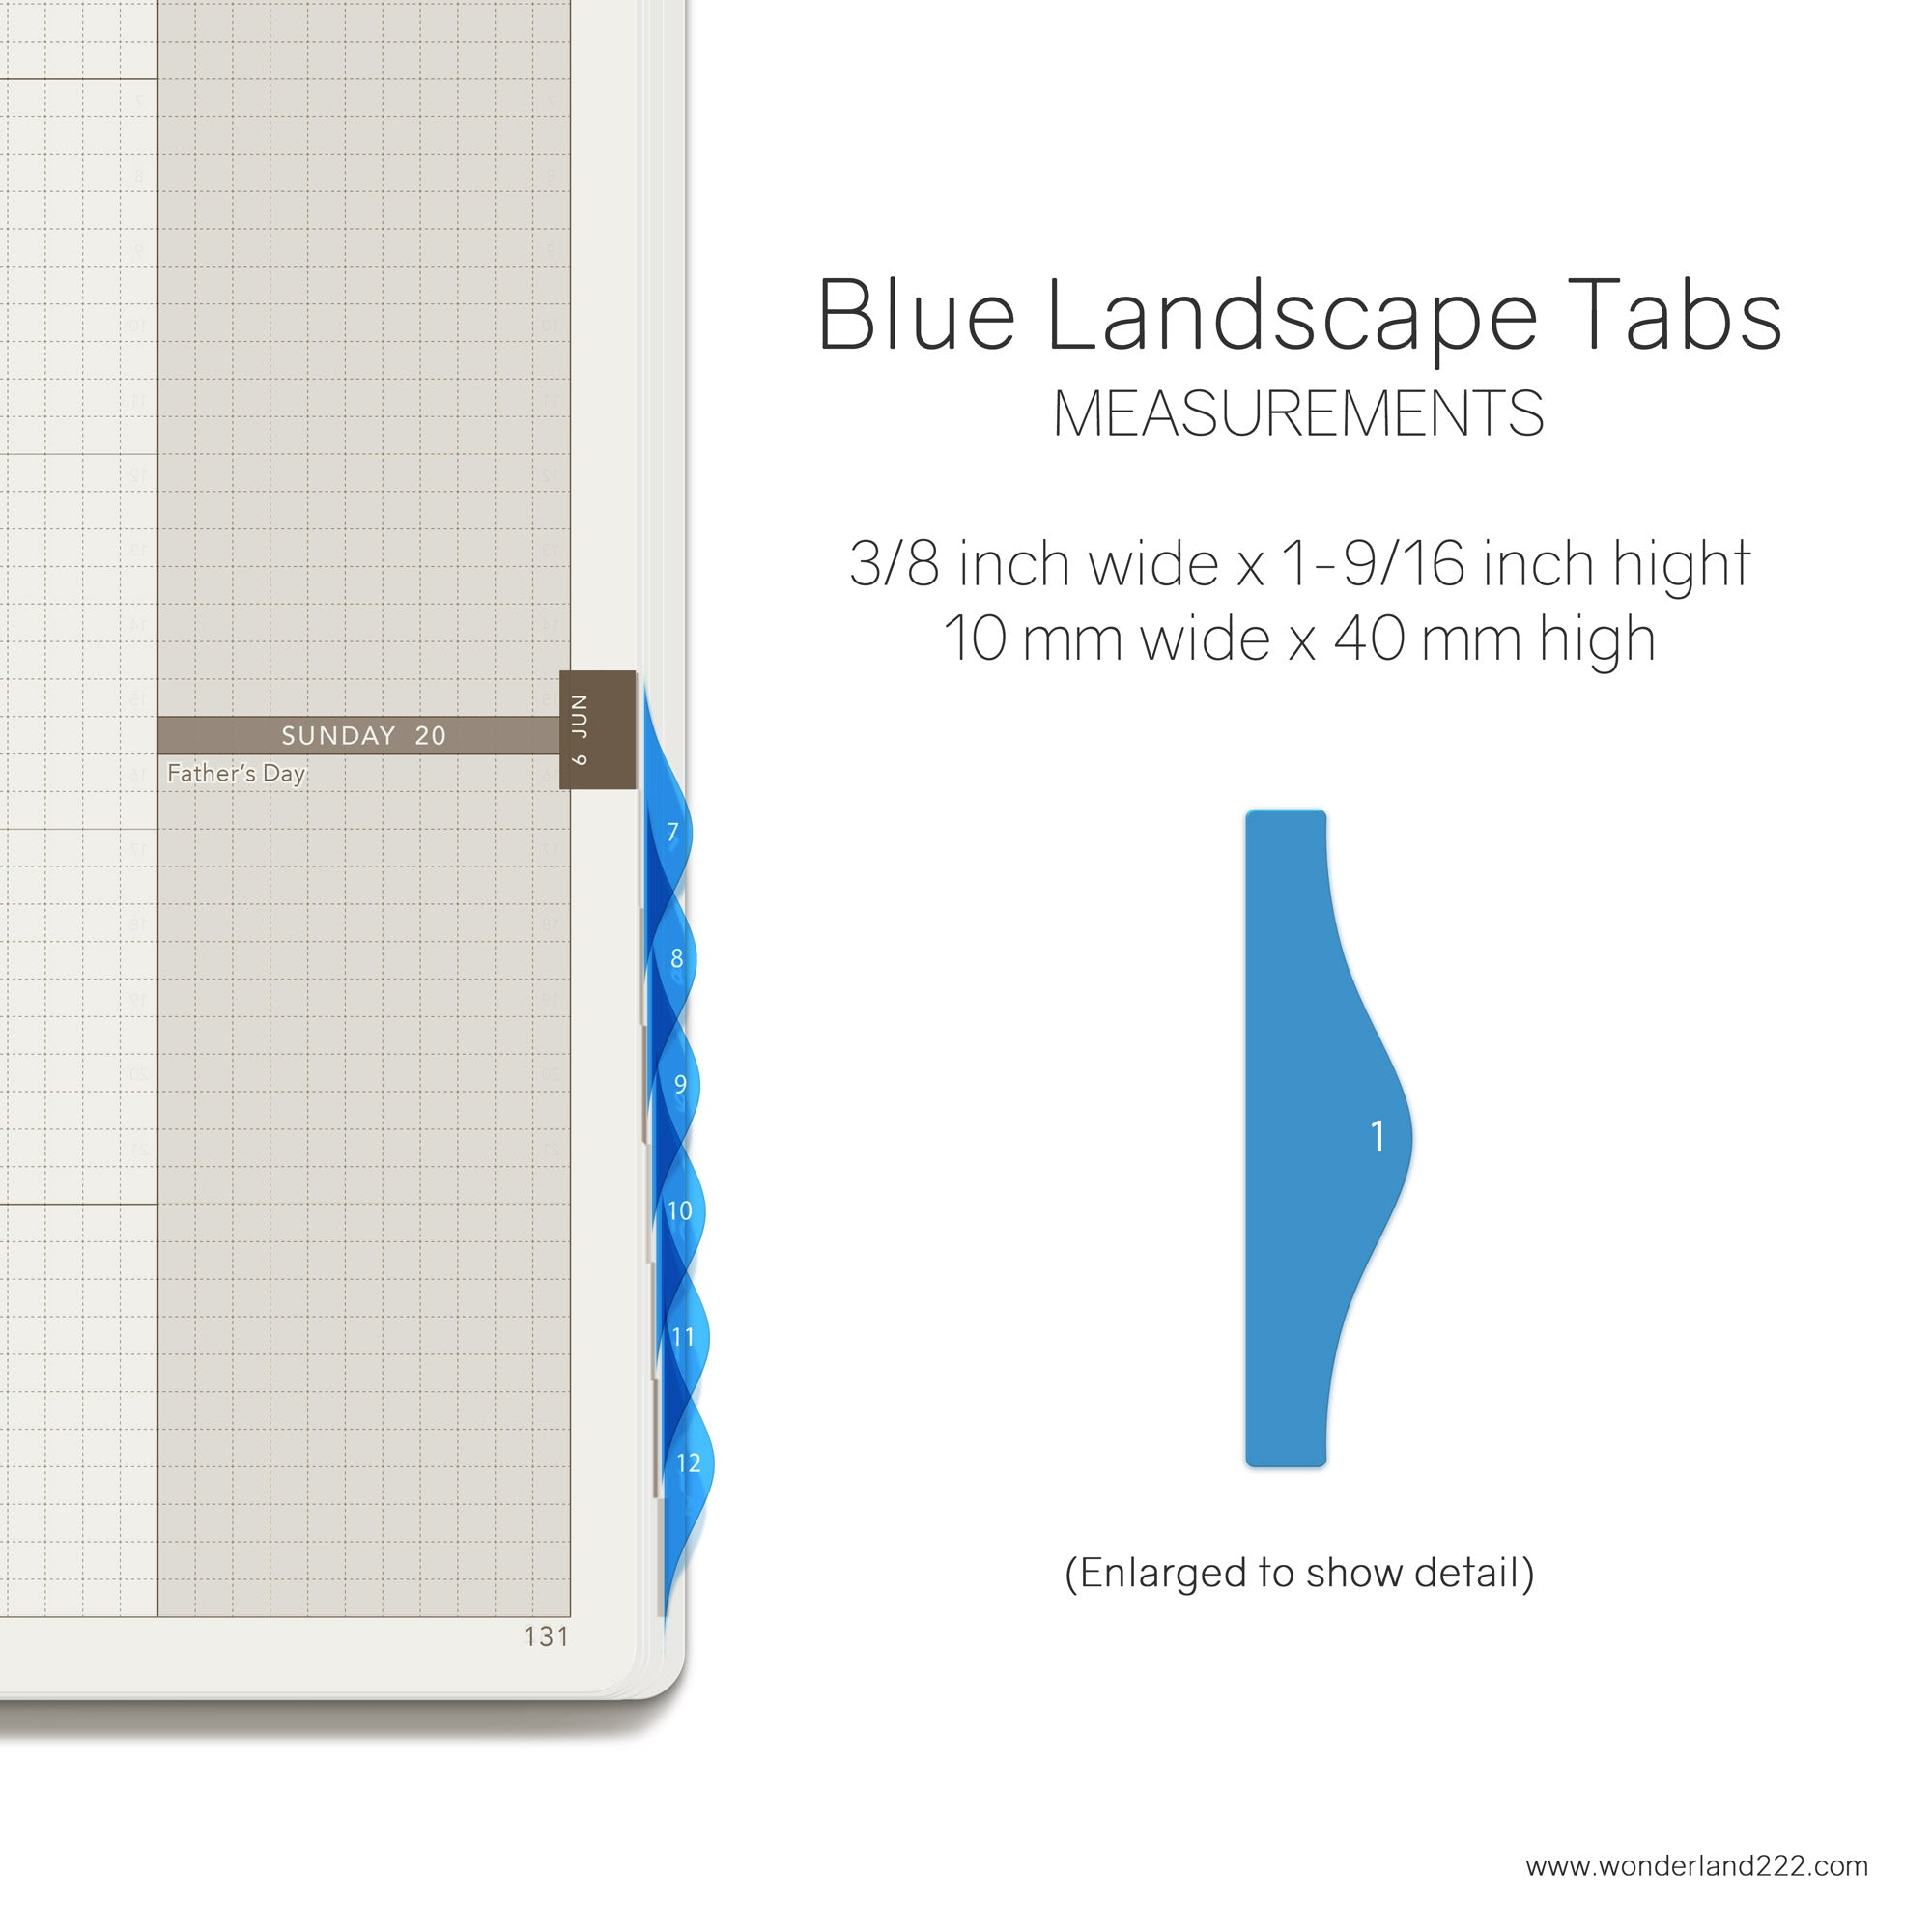 Wonderland 222 Tomoe River Paper Notebooks Planners with HighTide Landscape Monthly Index Tabs Blue Transparent